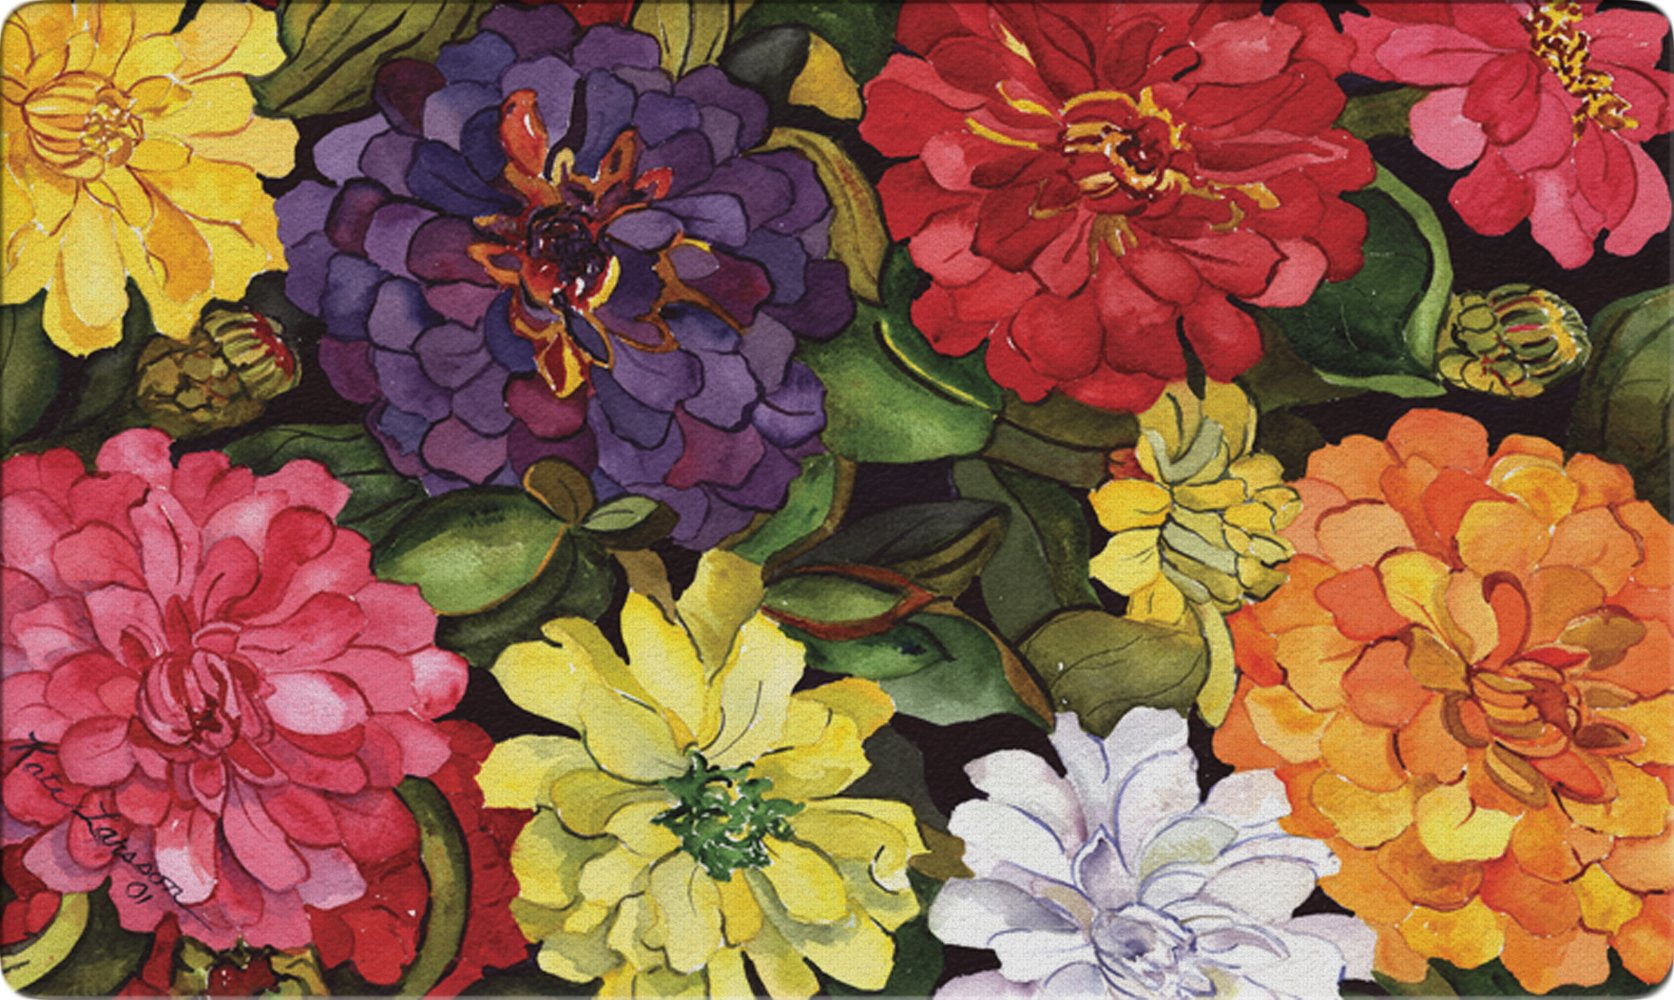 Toland Home Garden Zippy Zinnias 18 x 30 Inch Decorative Floor Mat Flower Colorful Floral Bouquet Doormat